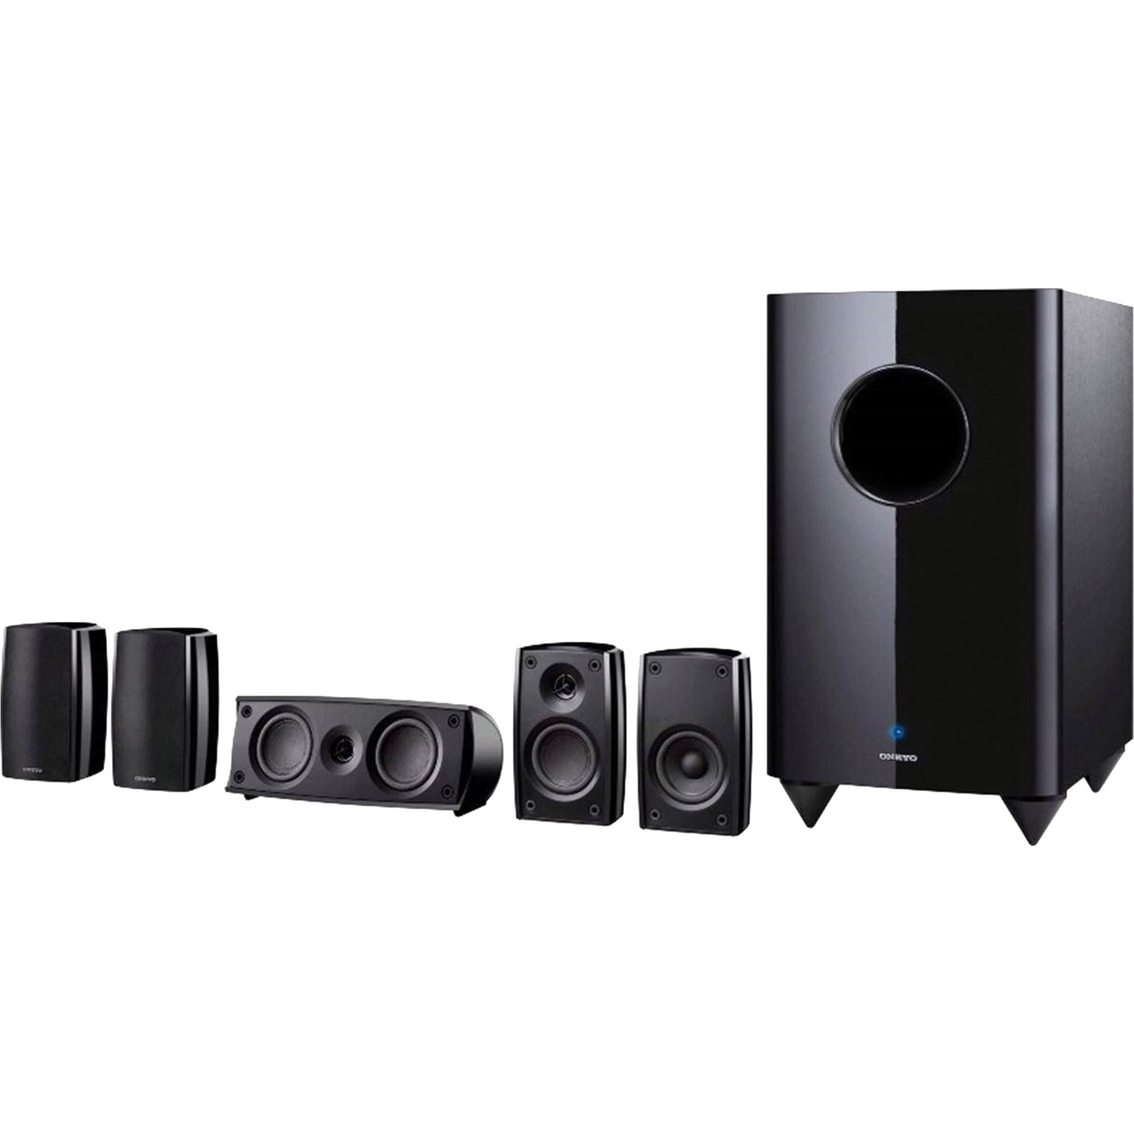 Onkyo 5 1 Surround Sound Home Theater System | Home Theater